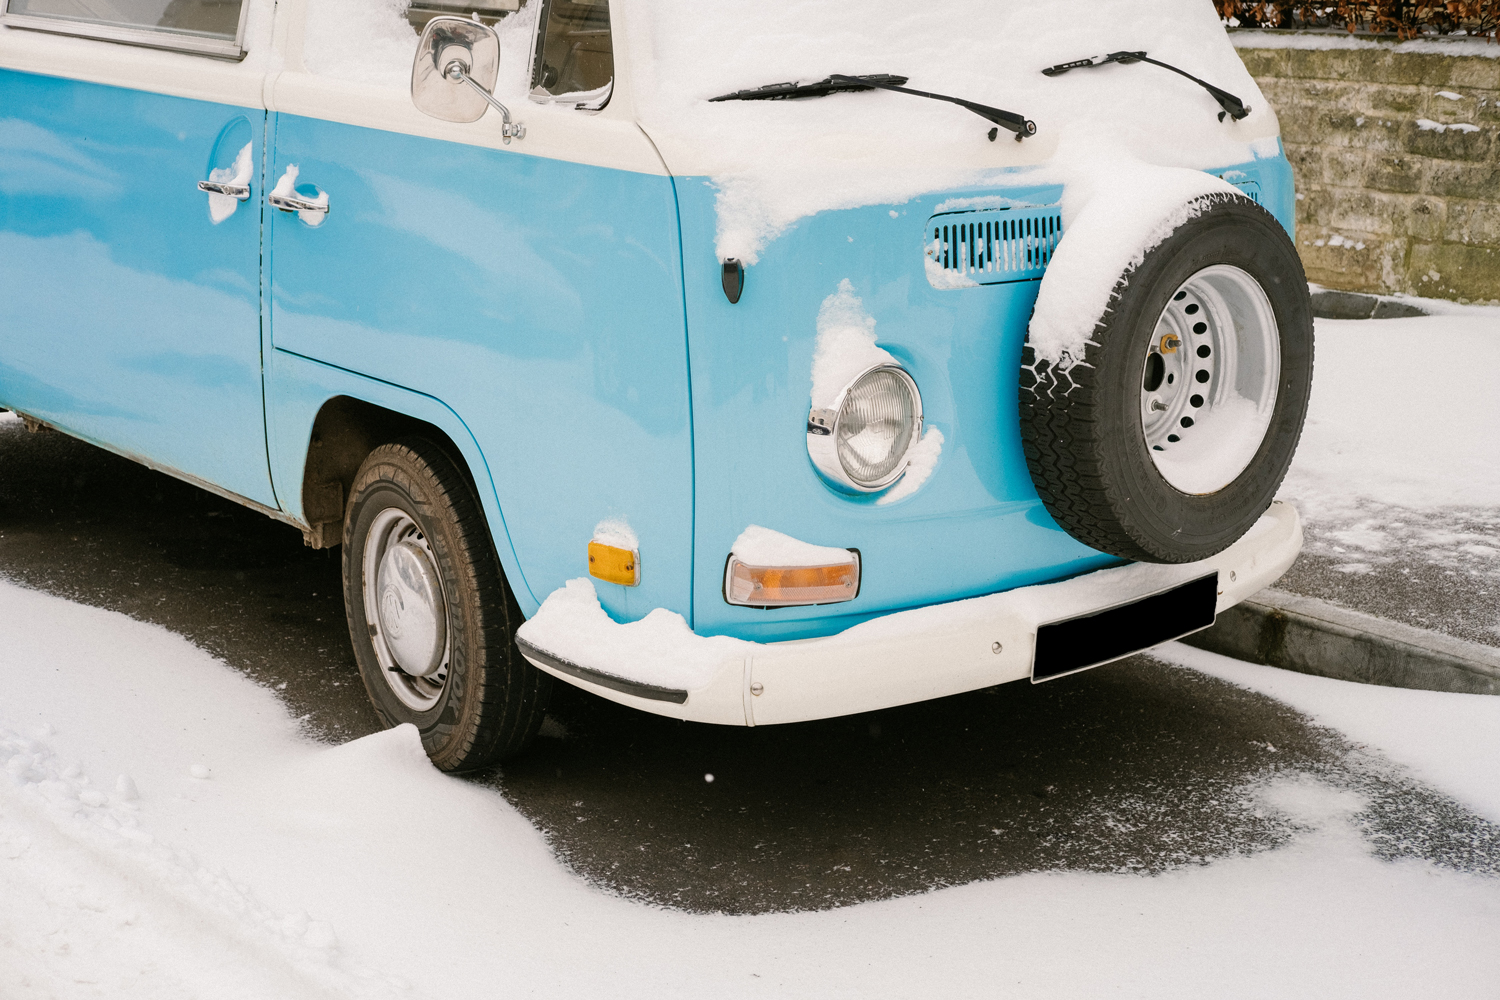 A vintage campervan parked at the side of a road covered in snow